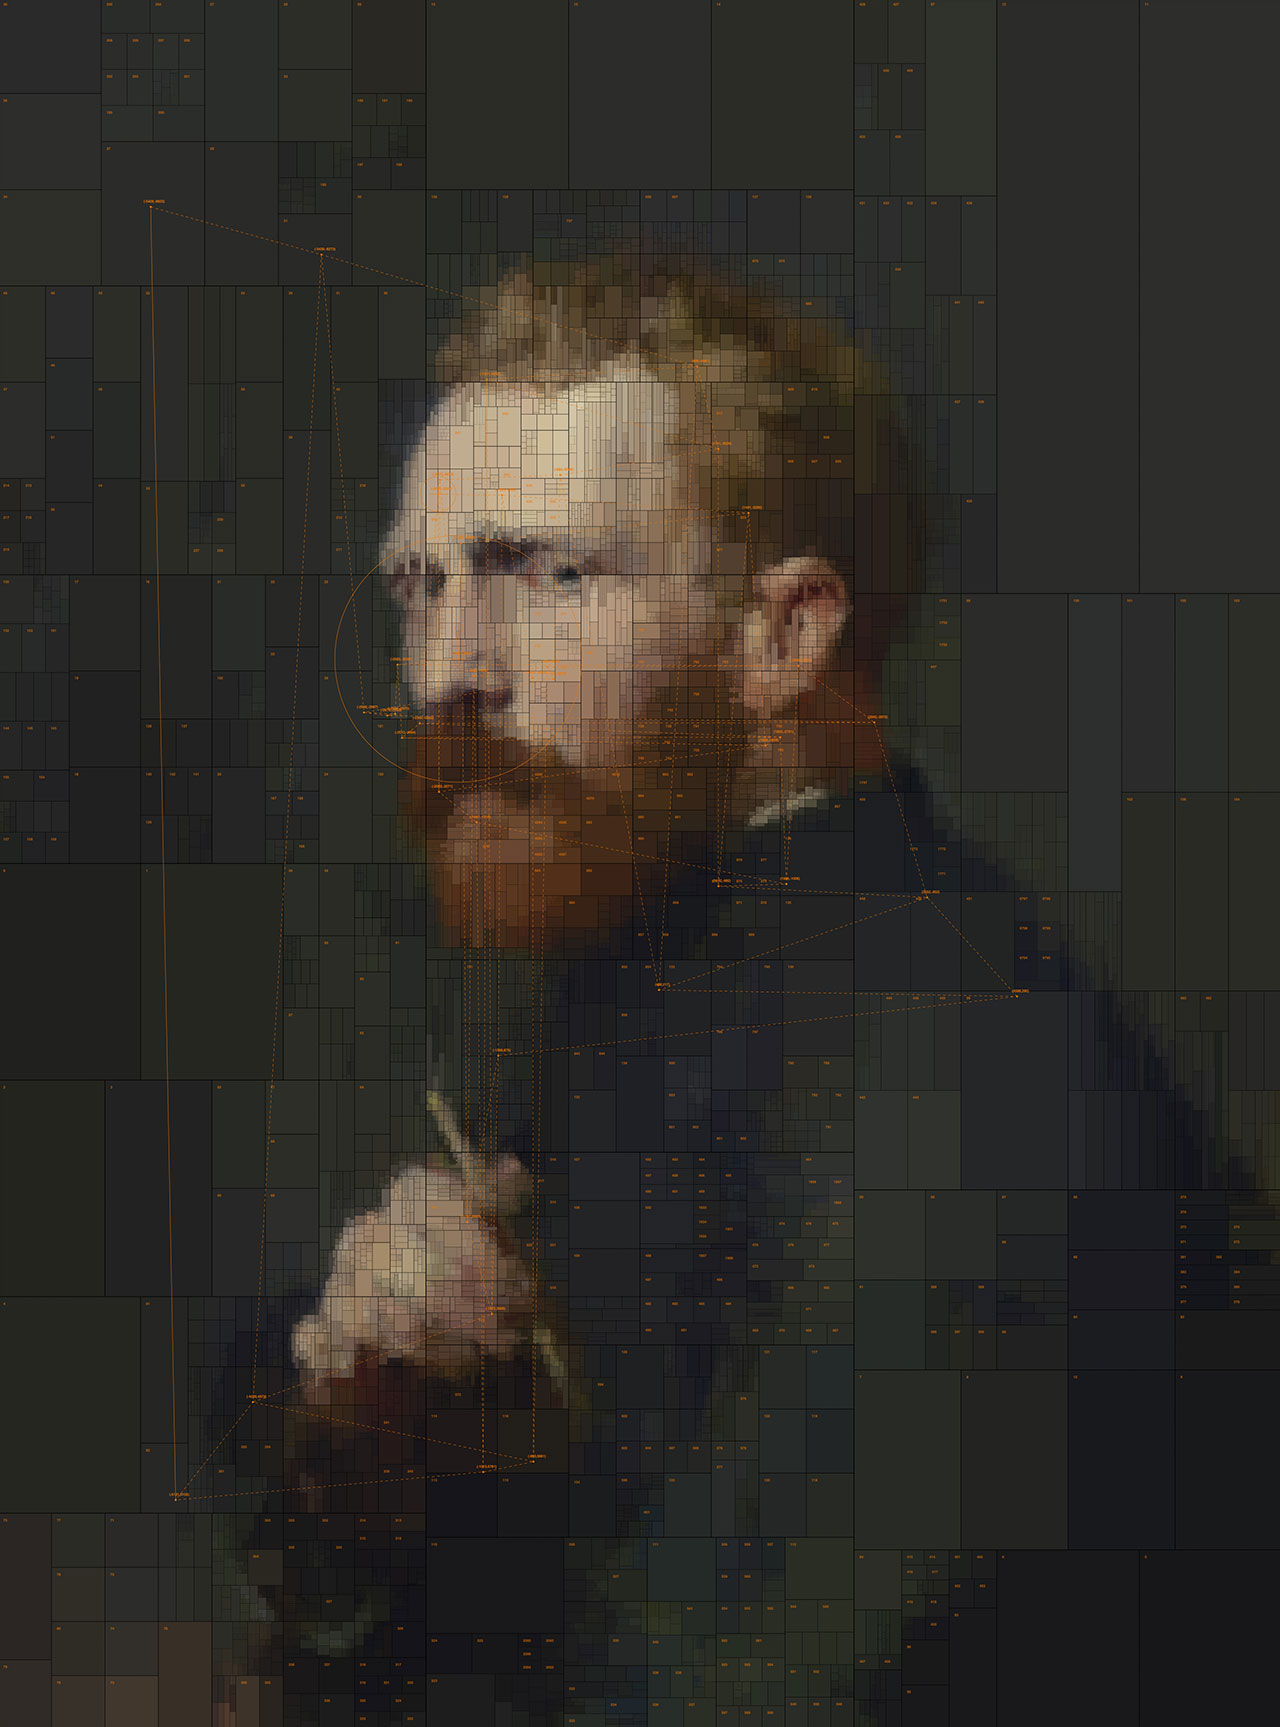 Vincent van Gogh, from Portraits series by Dimitris Ladopoulos (Original painting by John Peter Russell, 1886).